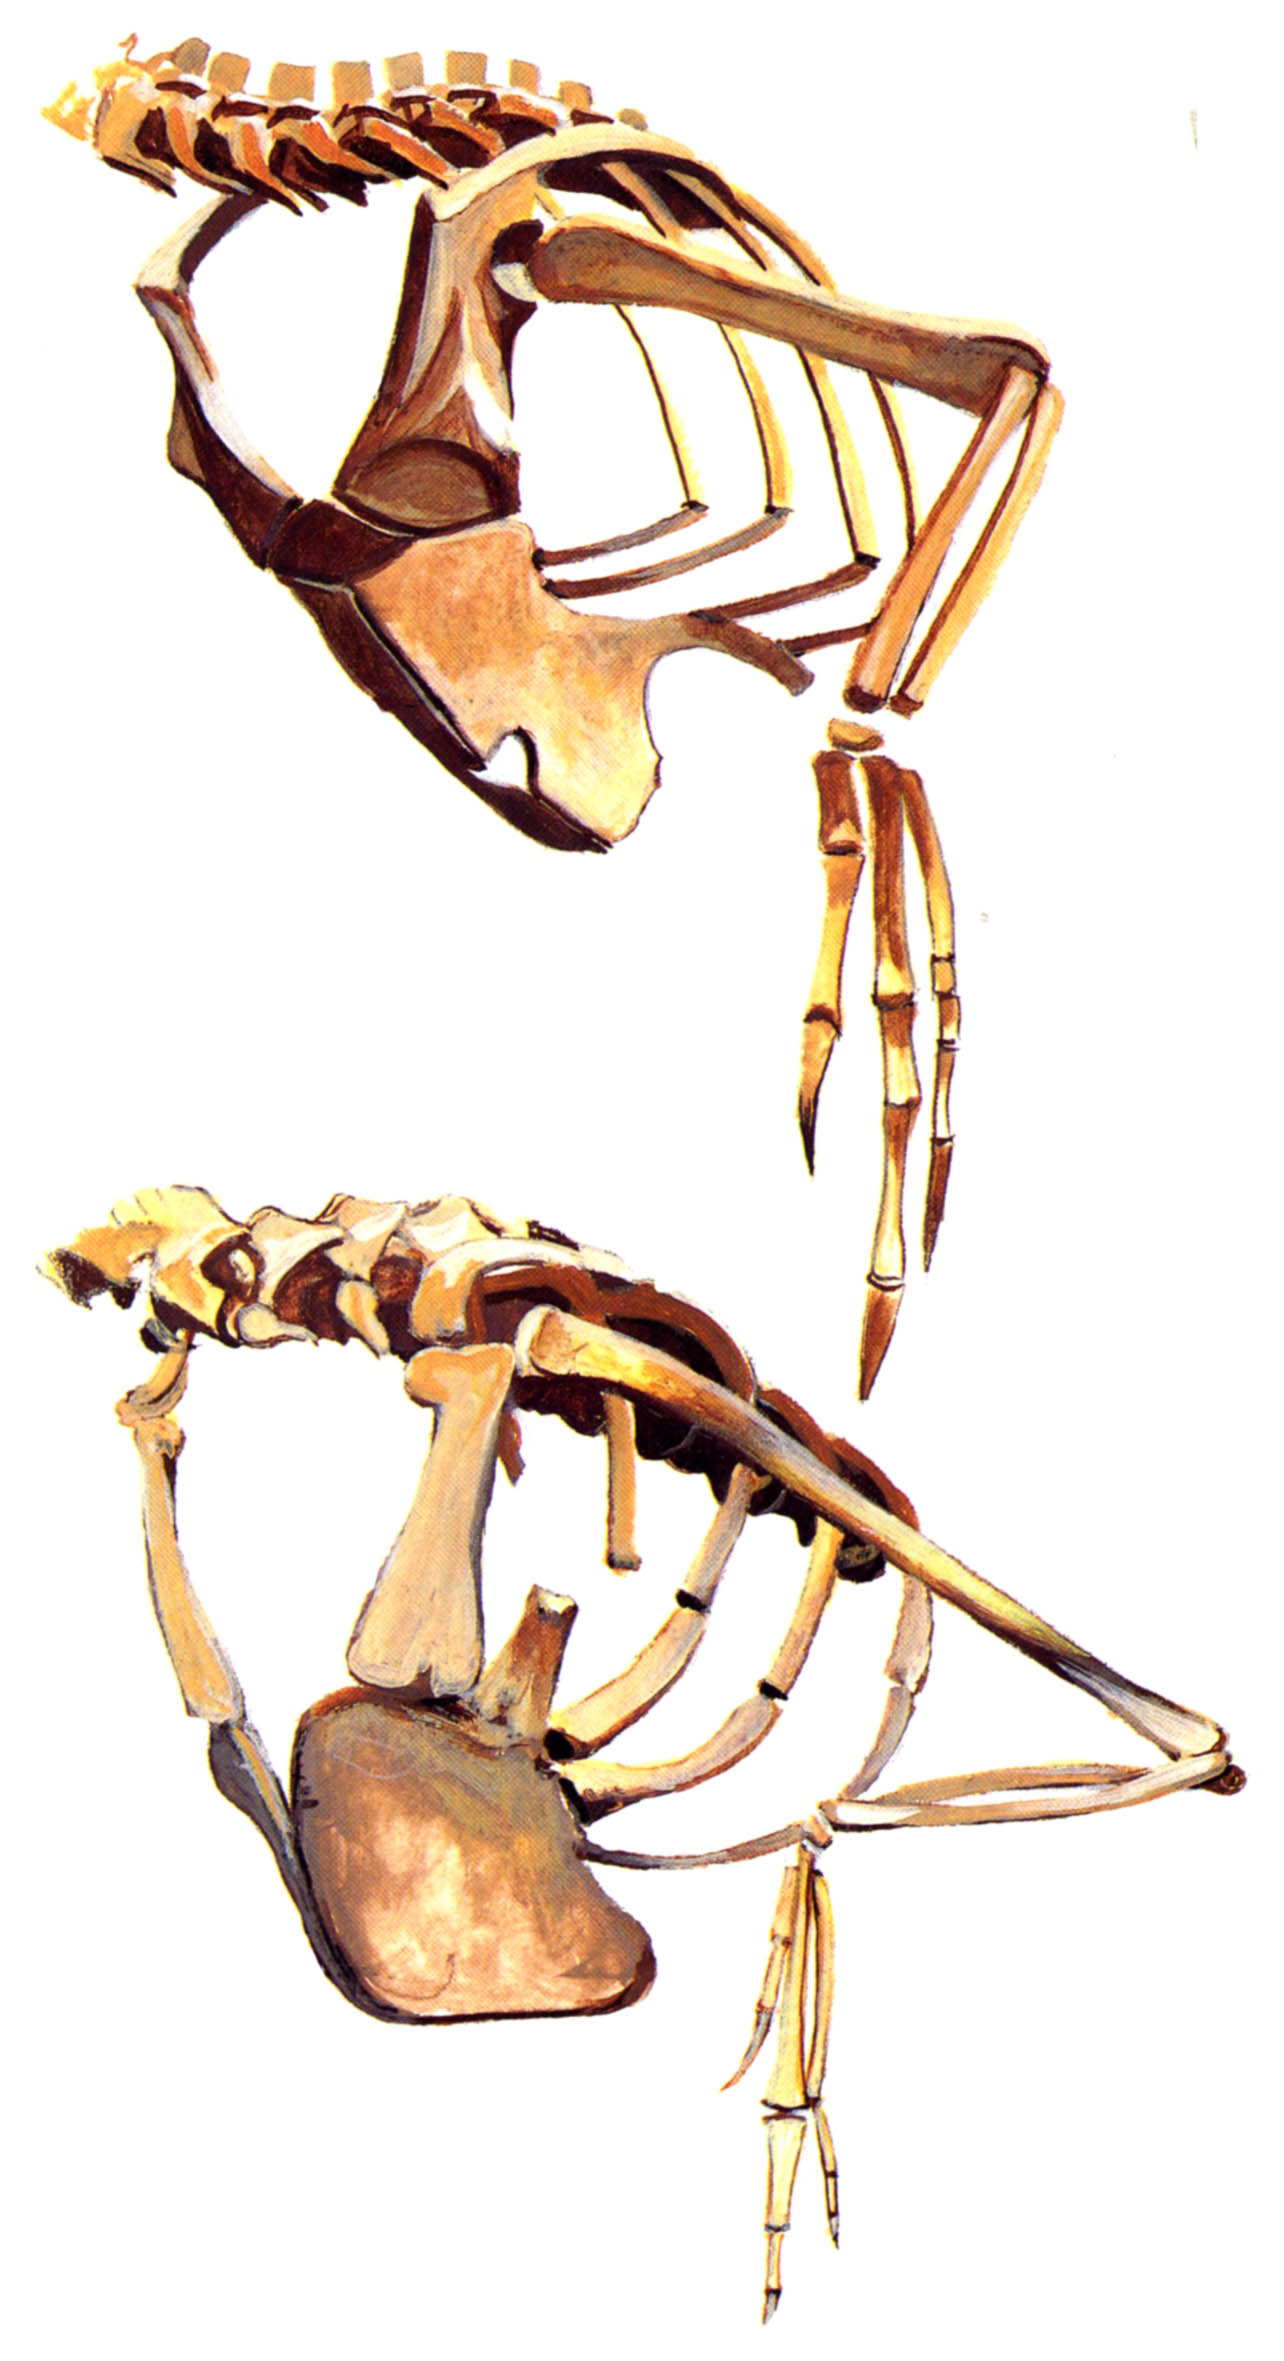 """Figure 1. Partial skeleton of Velociraptor compared to similar bones in the living bird, Rhea americana, photographed from a skeleton I processed several decades ago. This illustration was originally published in Don Lessem's """"Raptors, the Nastiest Dinosaurs."""""""